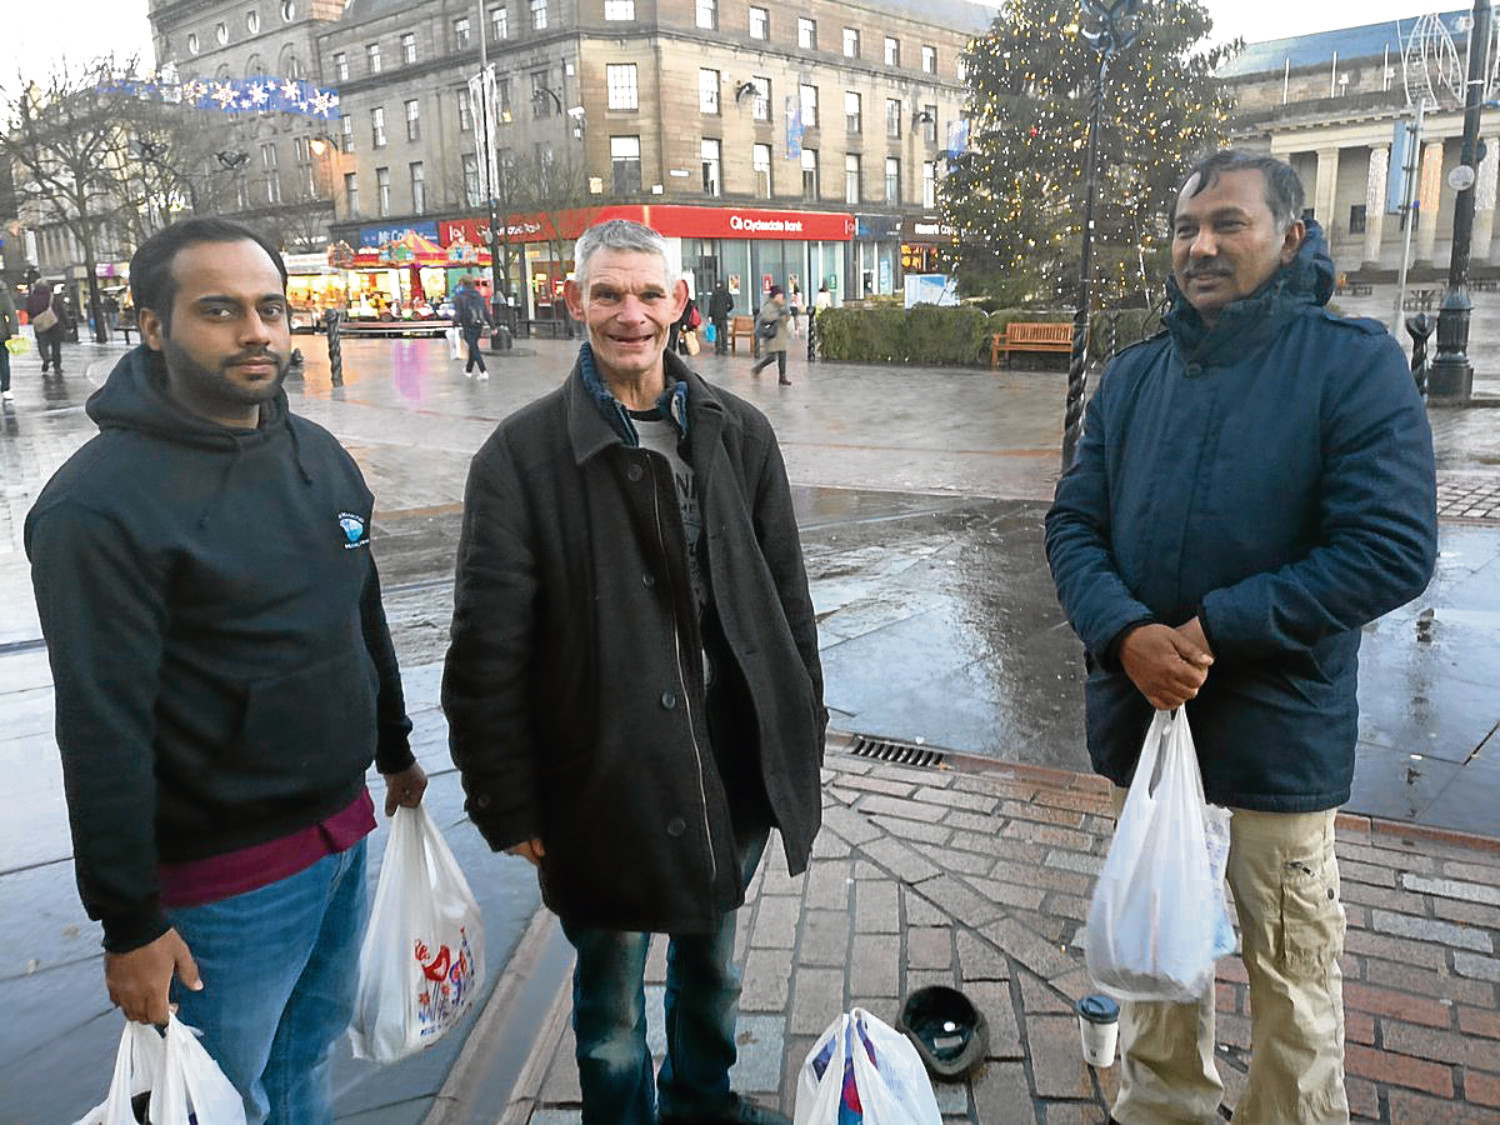 Naseh Ahmed (left) and Dr Golam Kabir, volunteers with the Dundee AMYA, speak to a member of the Dundee homeless community in the city centre.